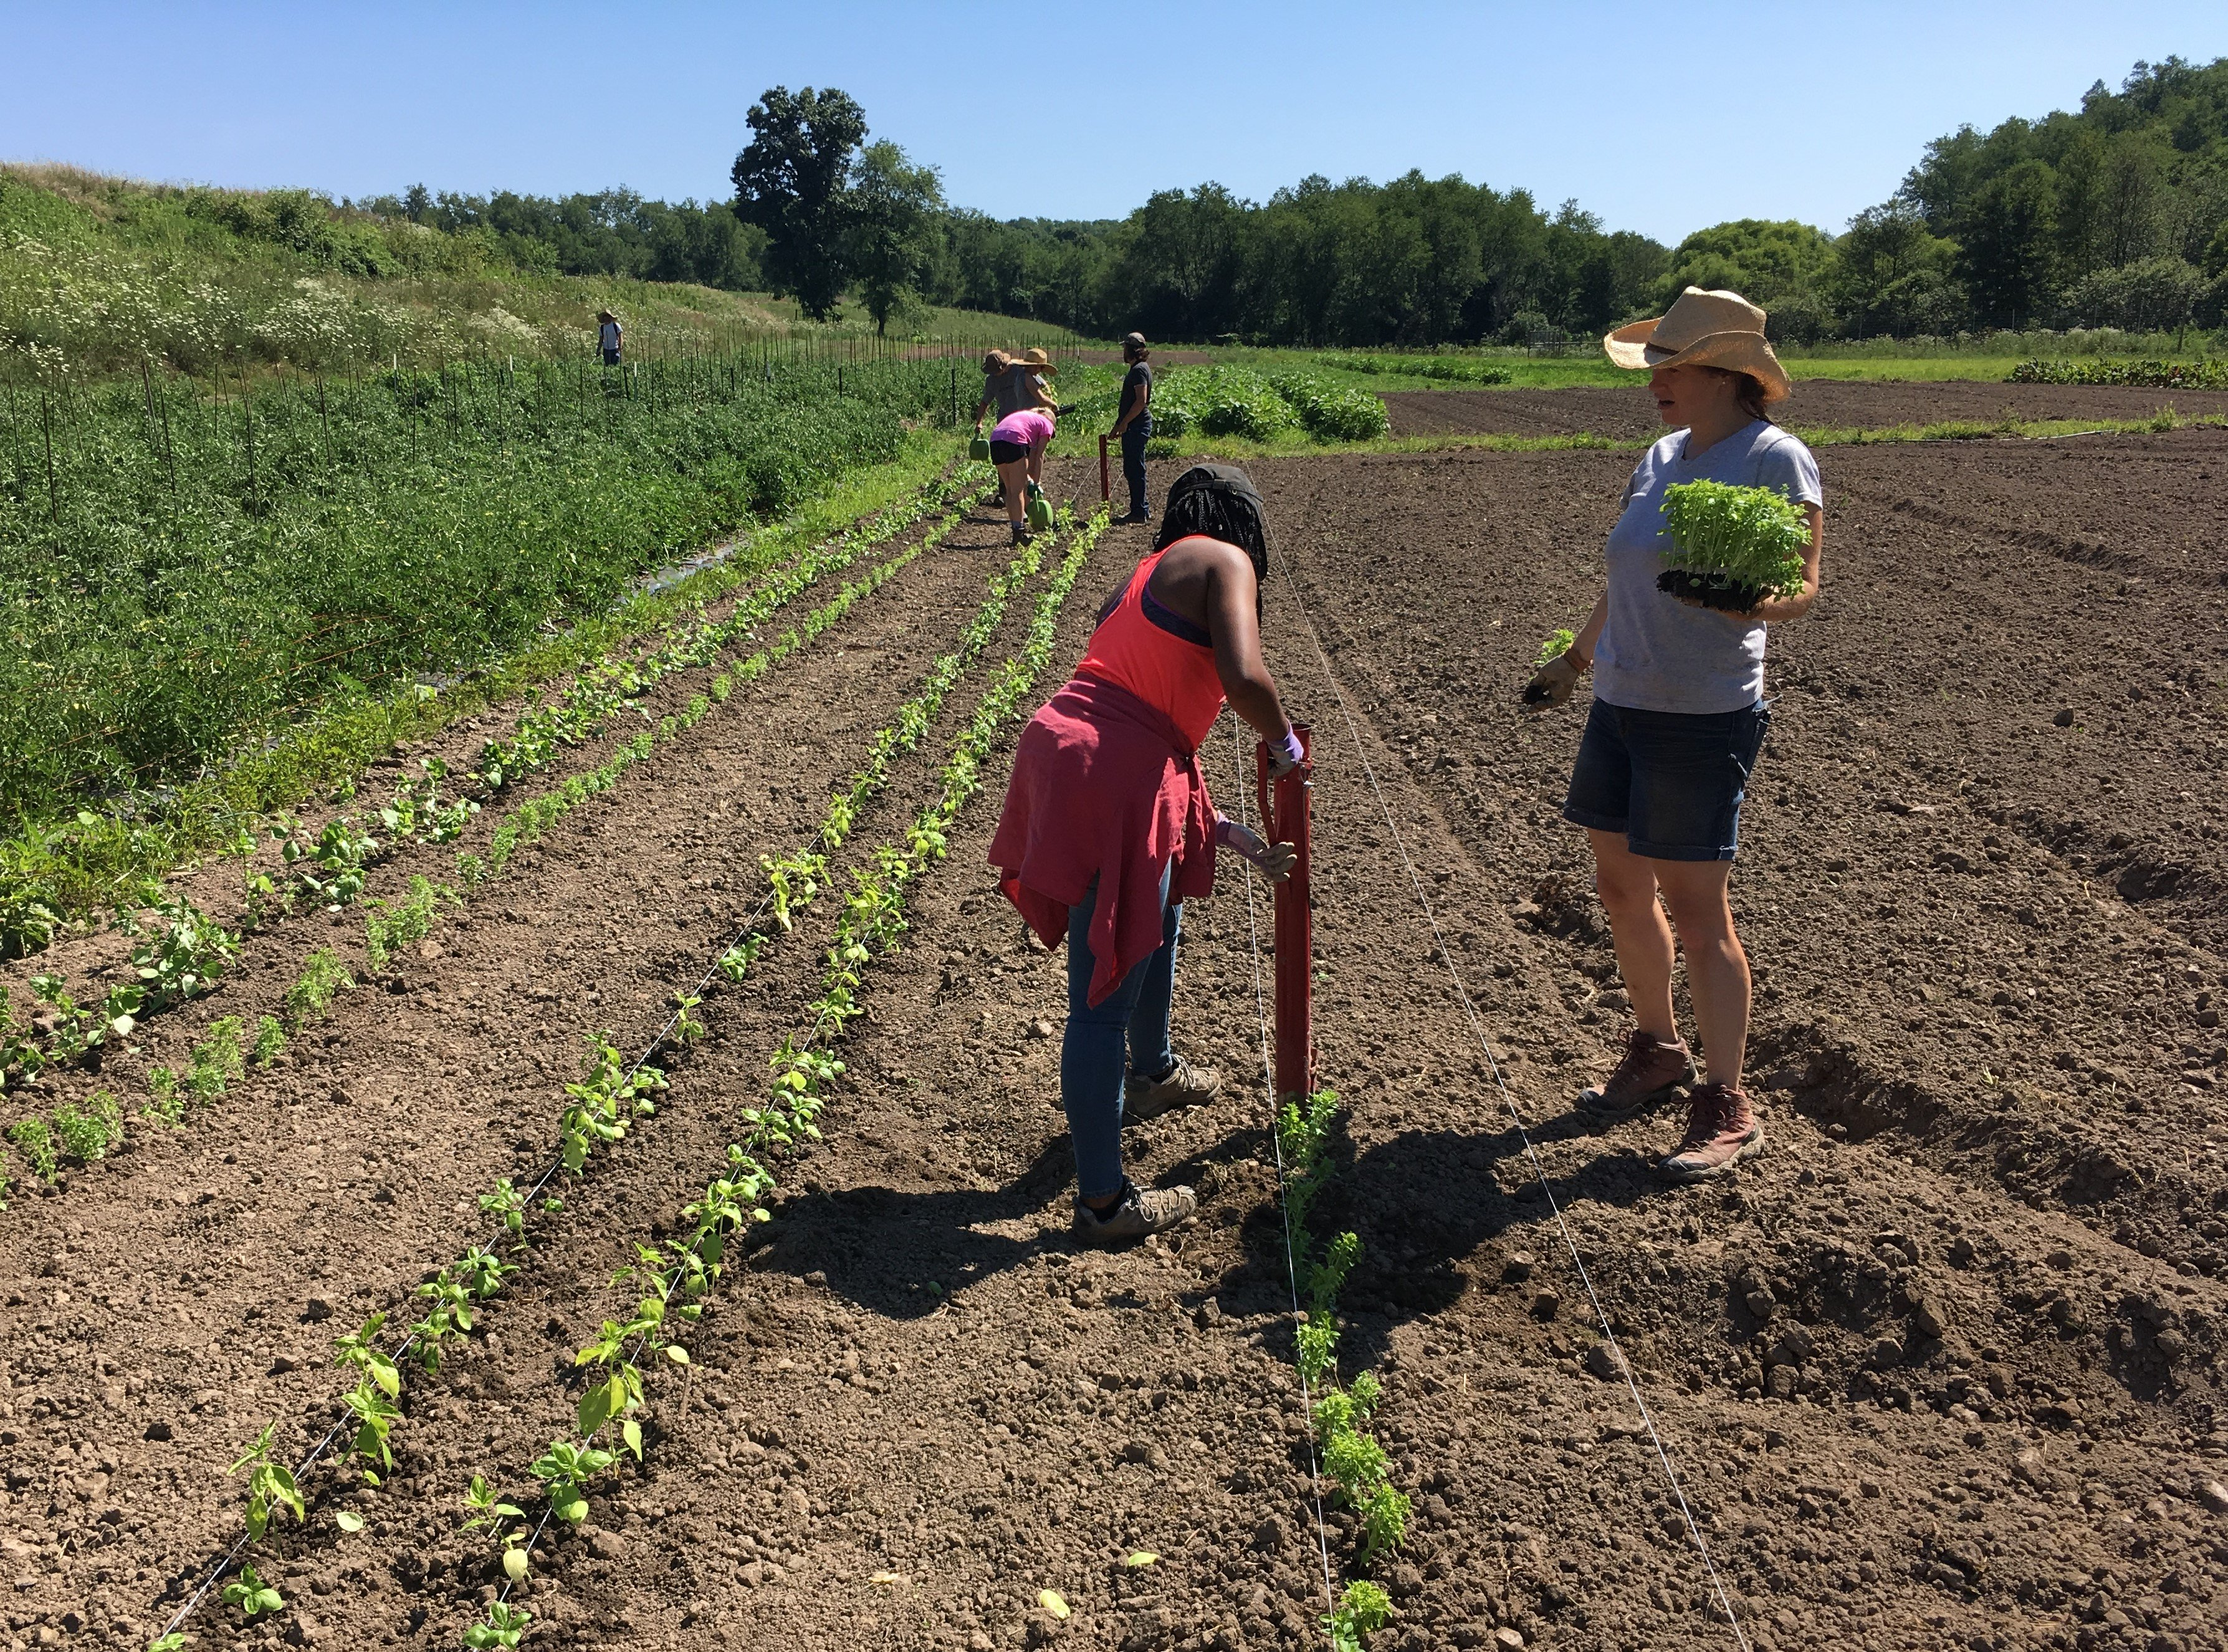 Next Happening: Rivendale Farms CSA Newsletter, Week 7 (July 24)